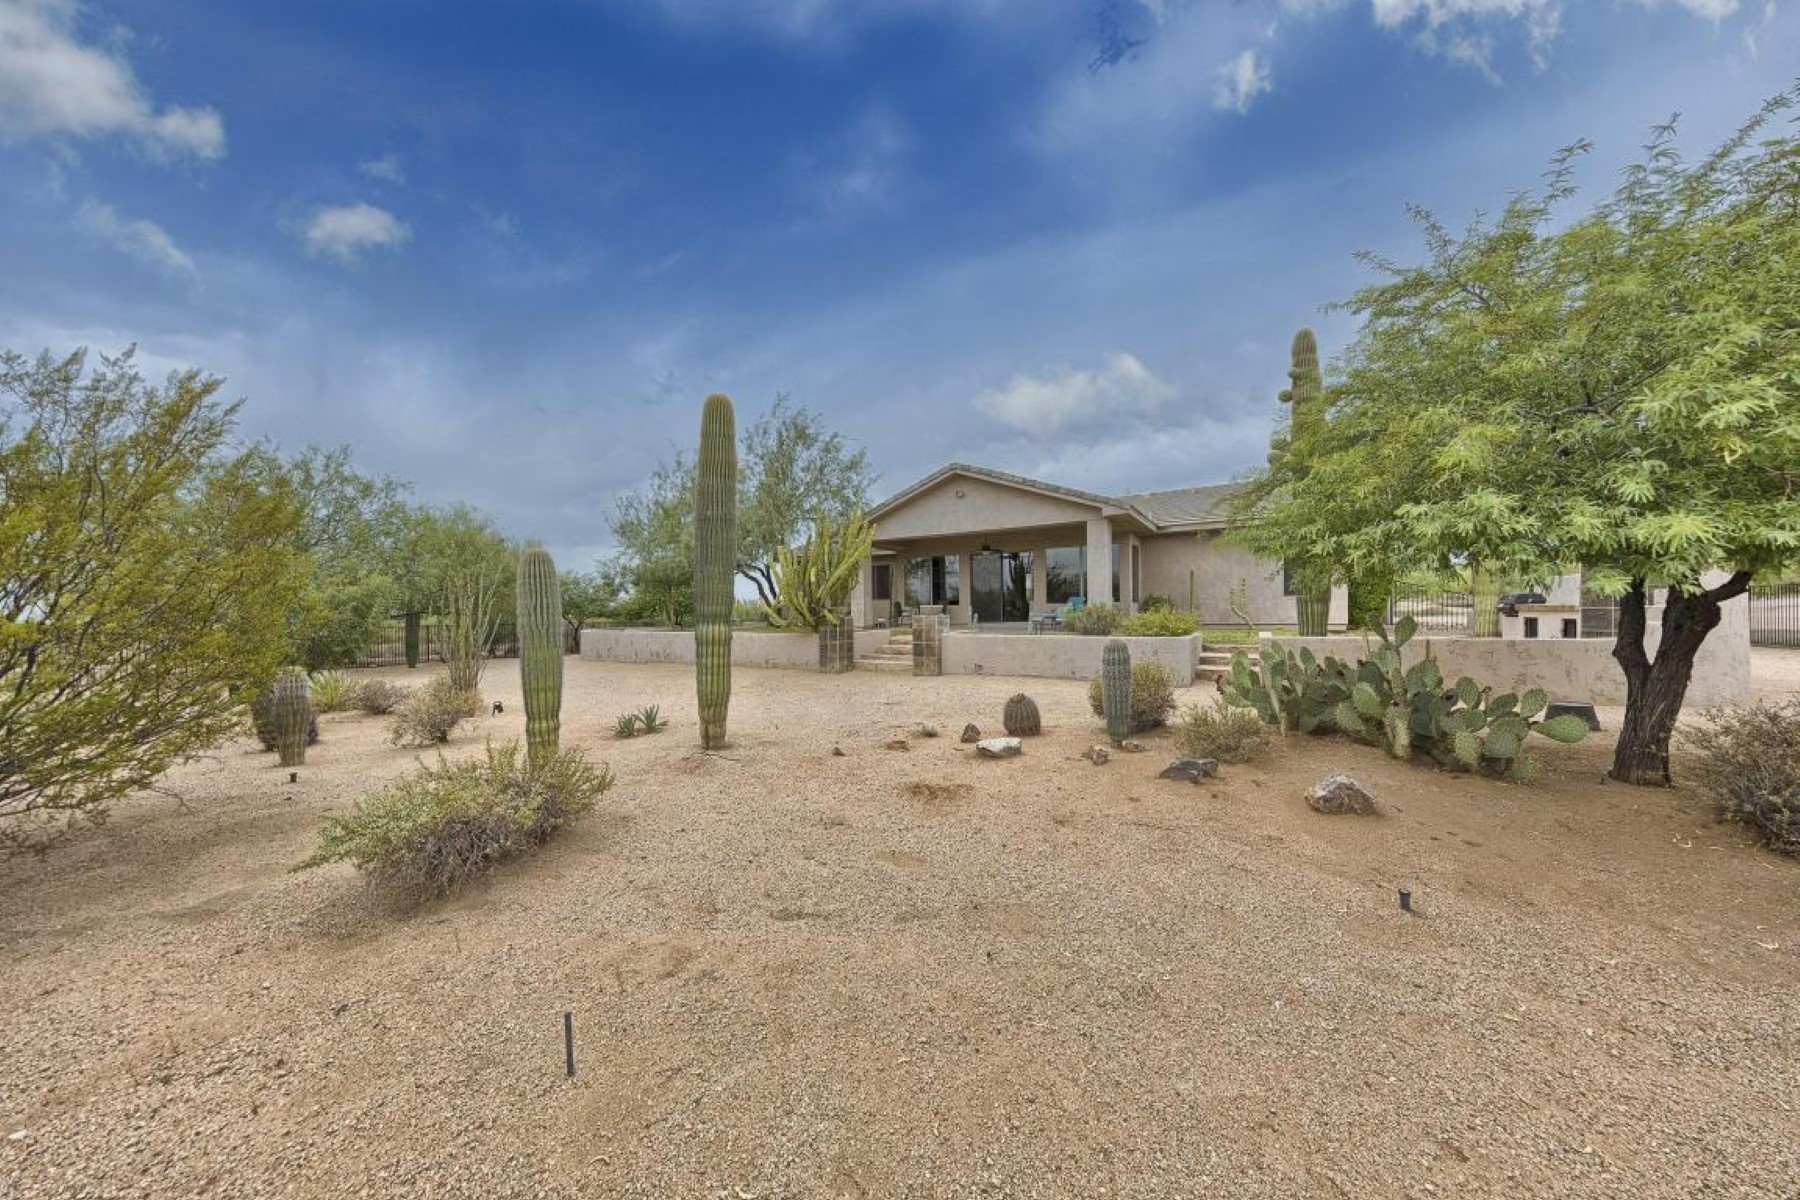 Single Family Home for Sale at Wonderful four bed + den, 3.5 bath with split floor plan. 5801 E WILDCAT DR Cave Creek, Arizona 85331 United States